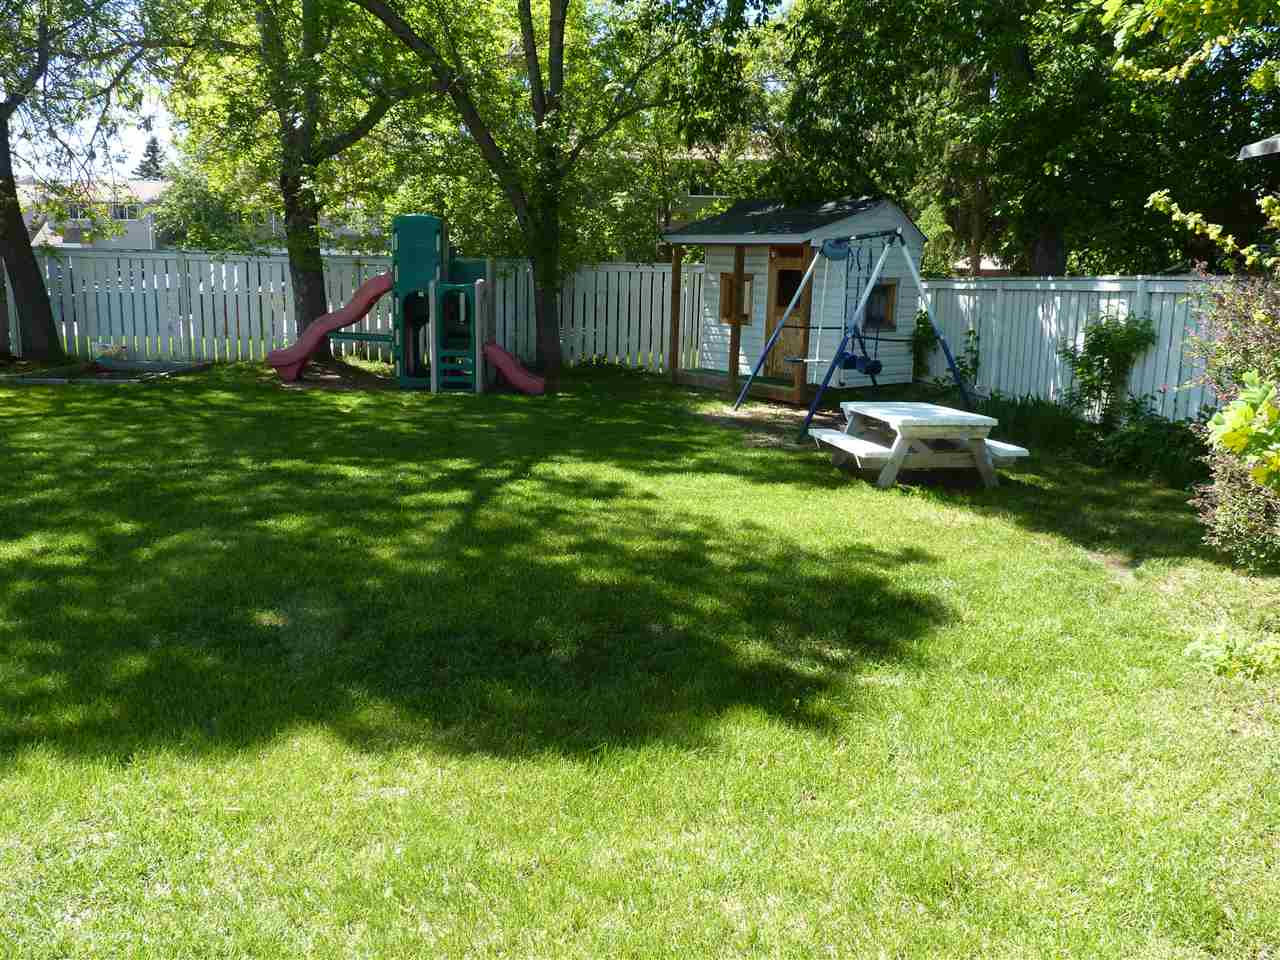 Playhouse and swingset are staying.